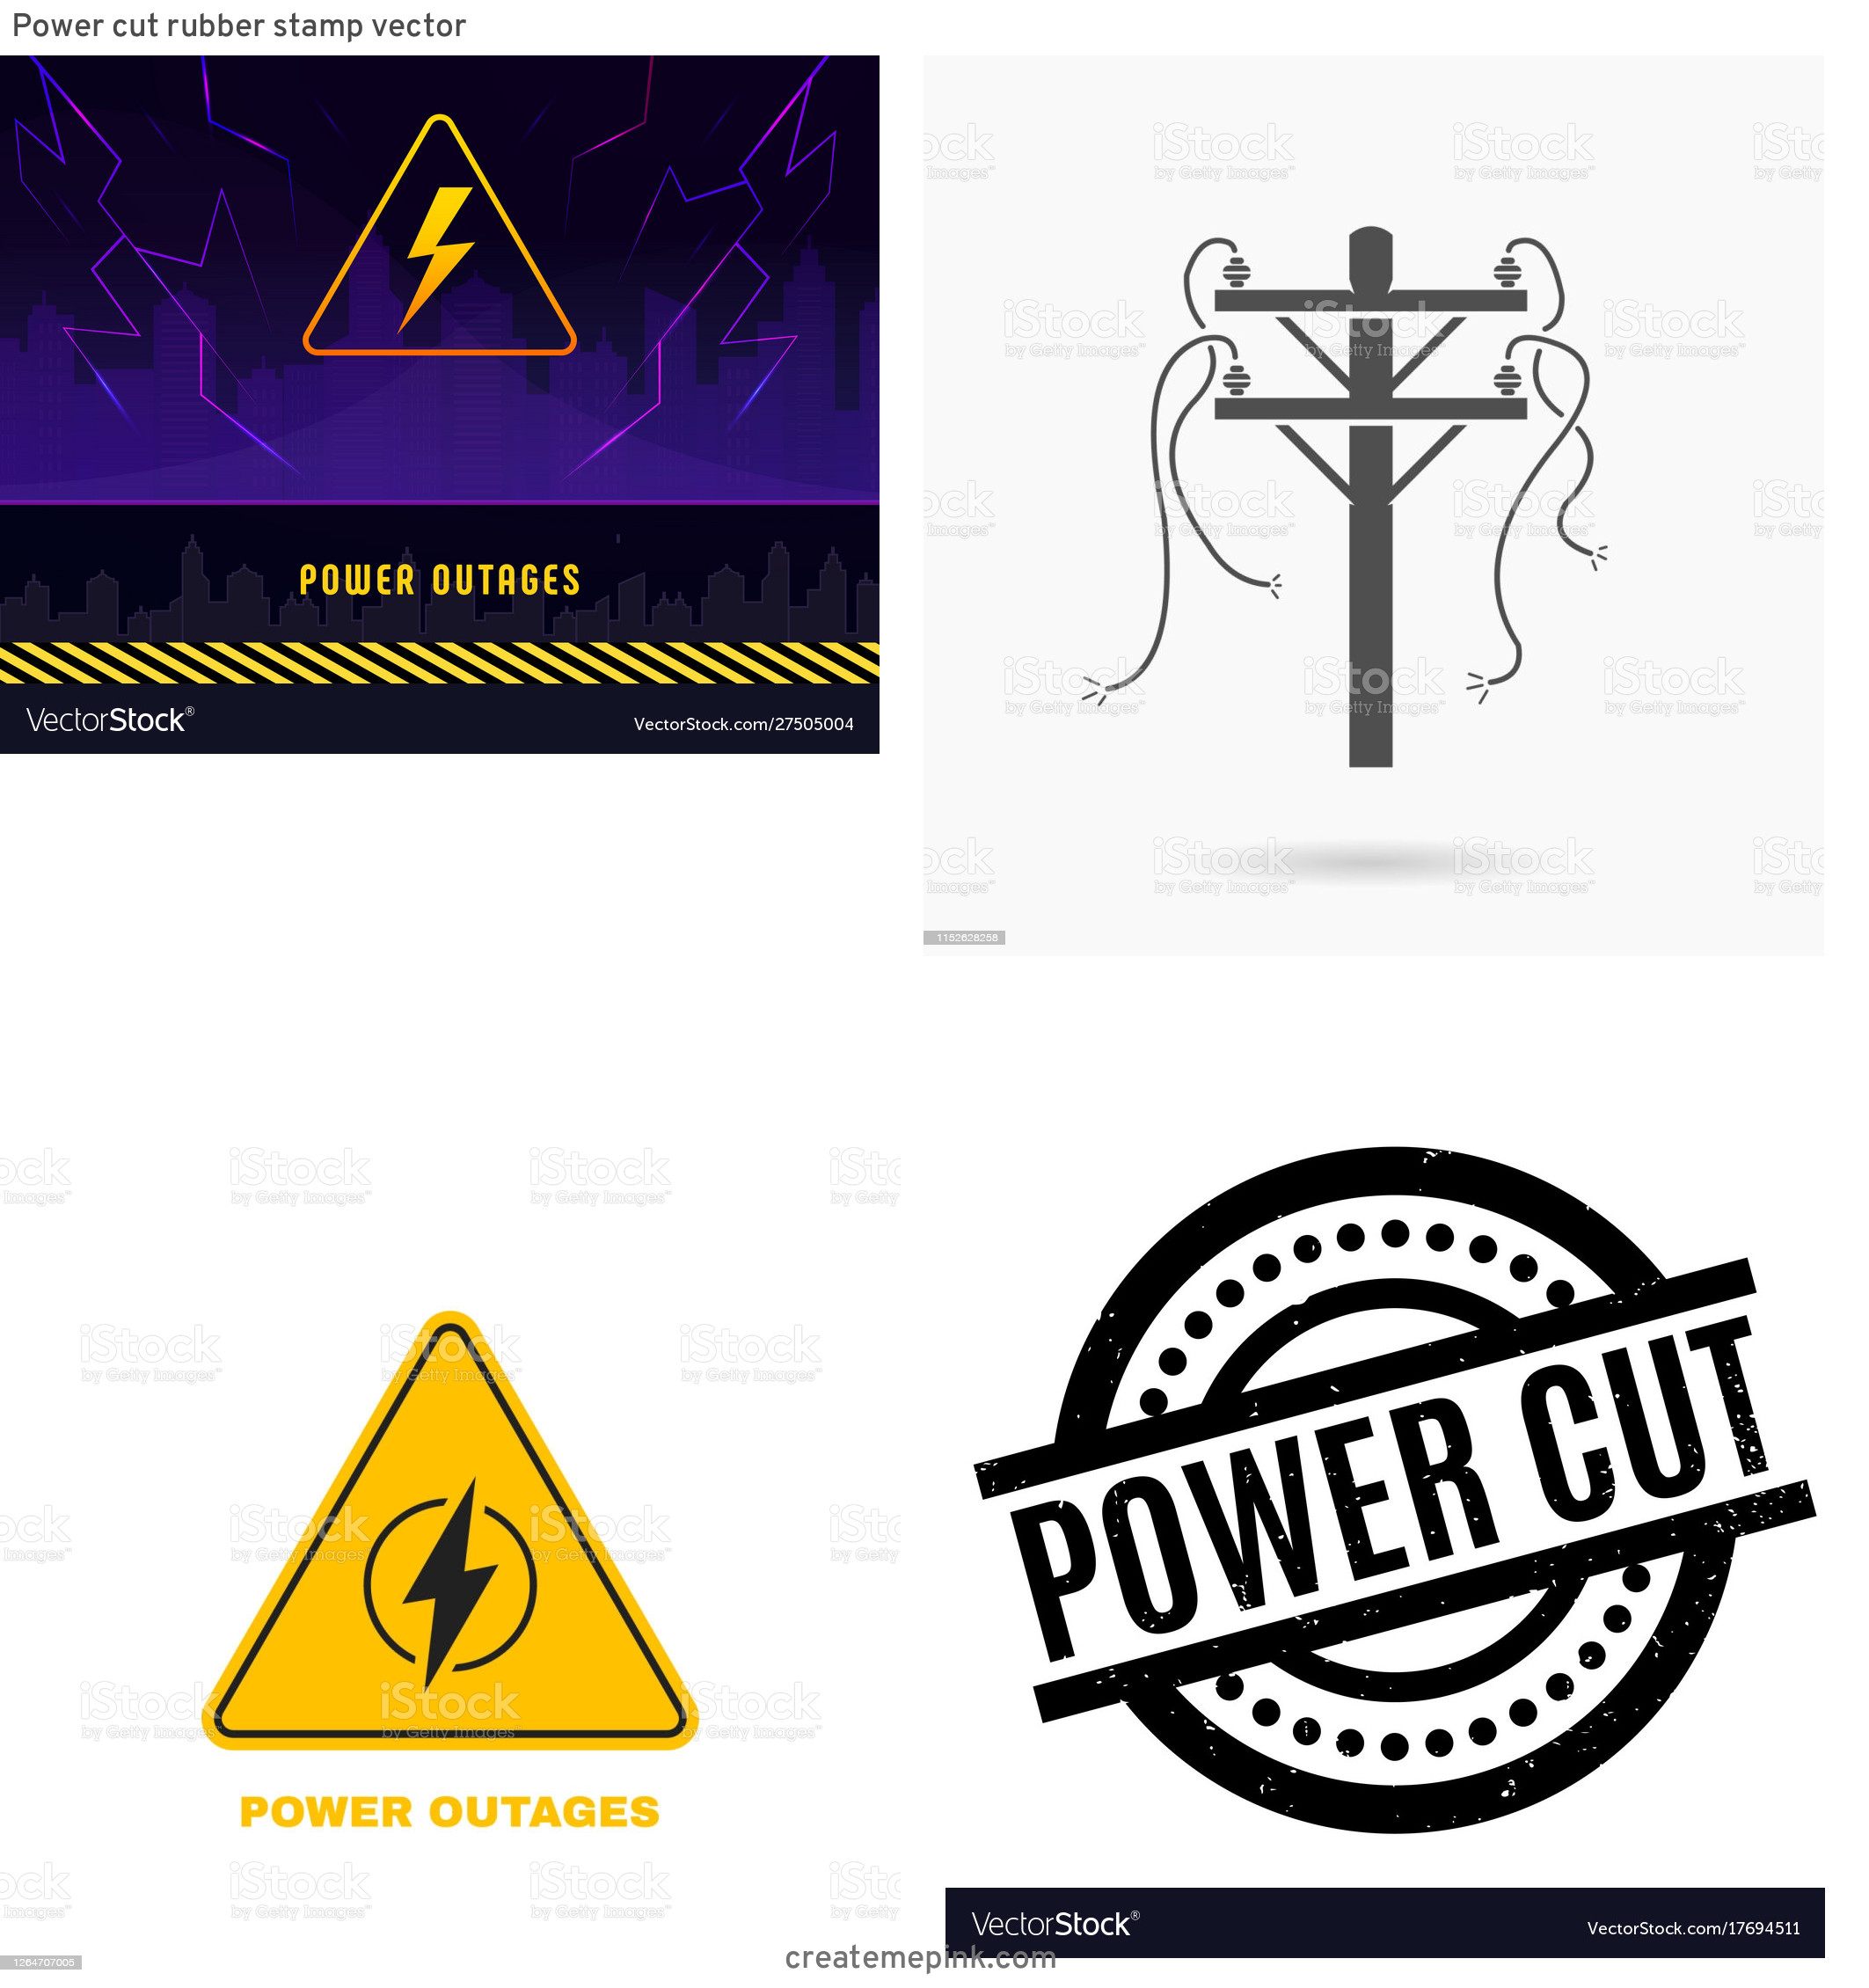 Vector Power Outage: Power Cut Rubber Stamp Vector